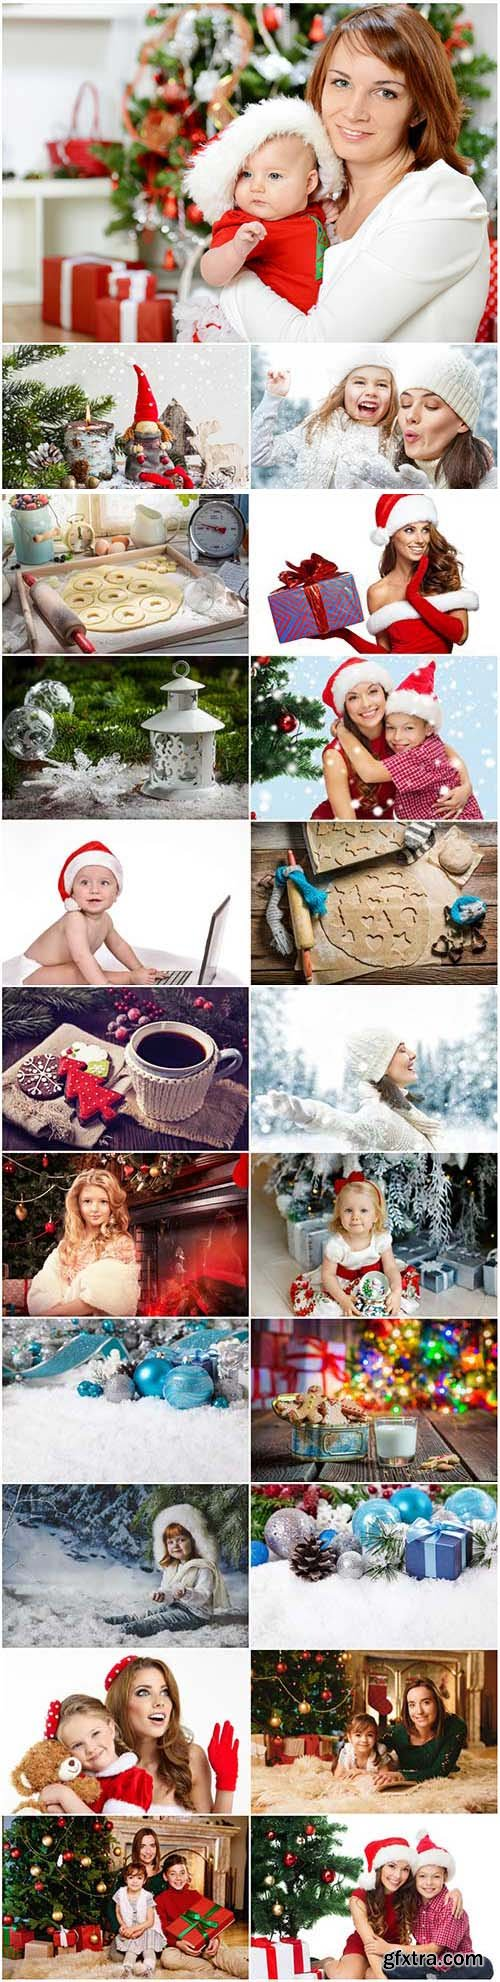 New Year and Christmas stock photos 89